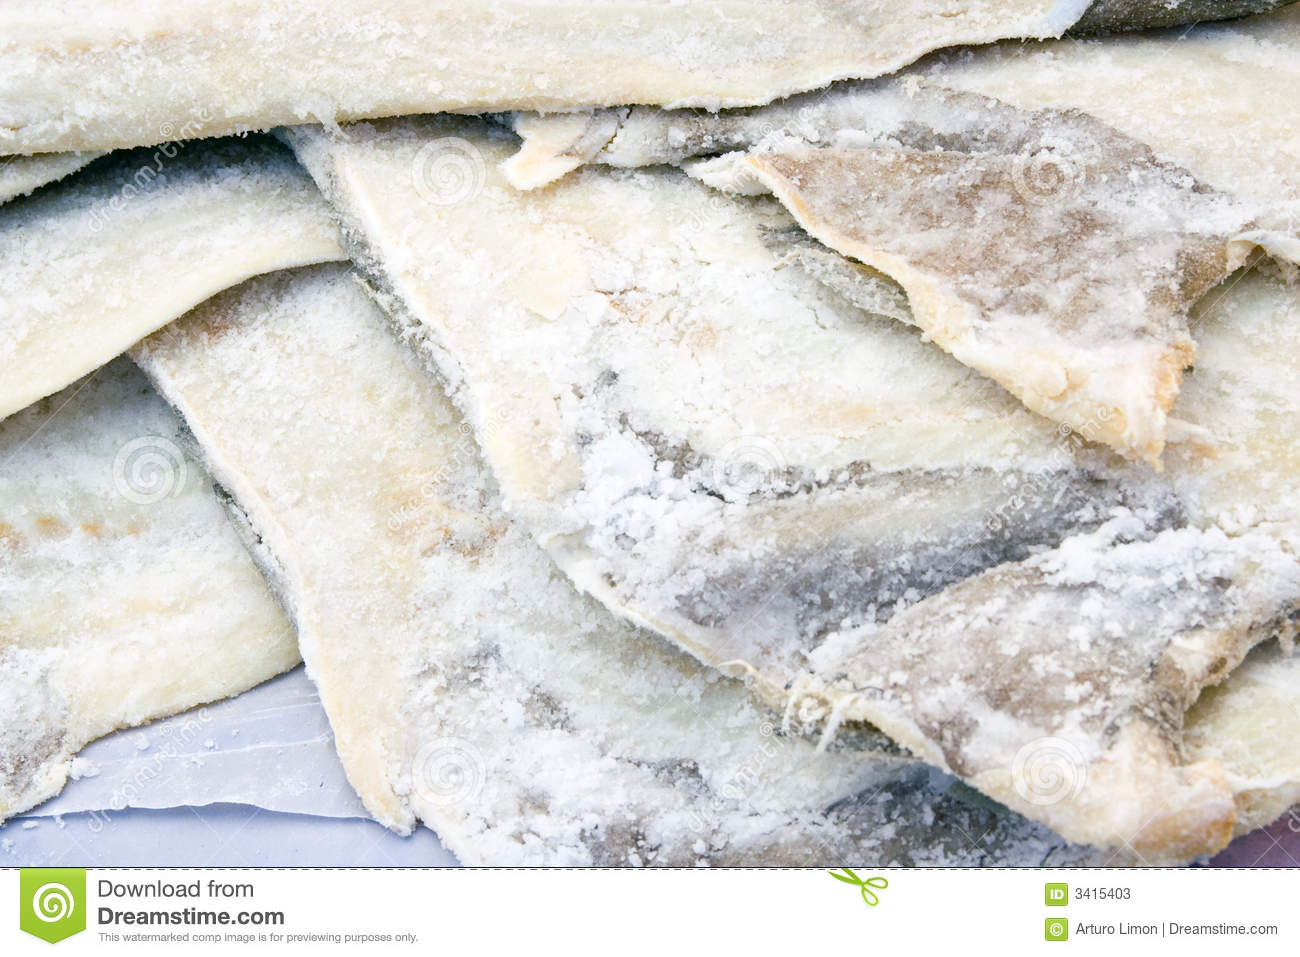 Cod fish stock photos image 3415403 for Where to buy salted cod fish